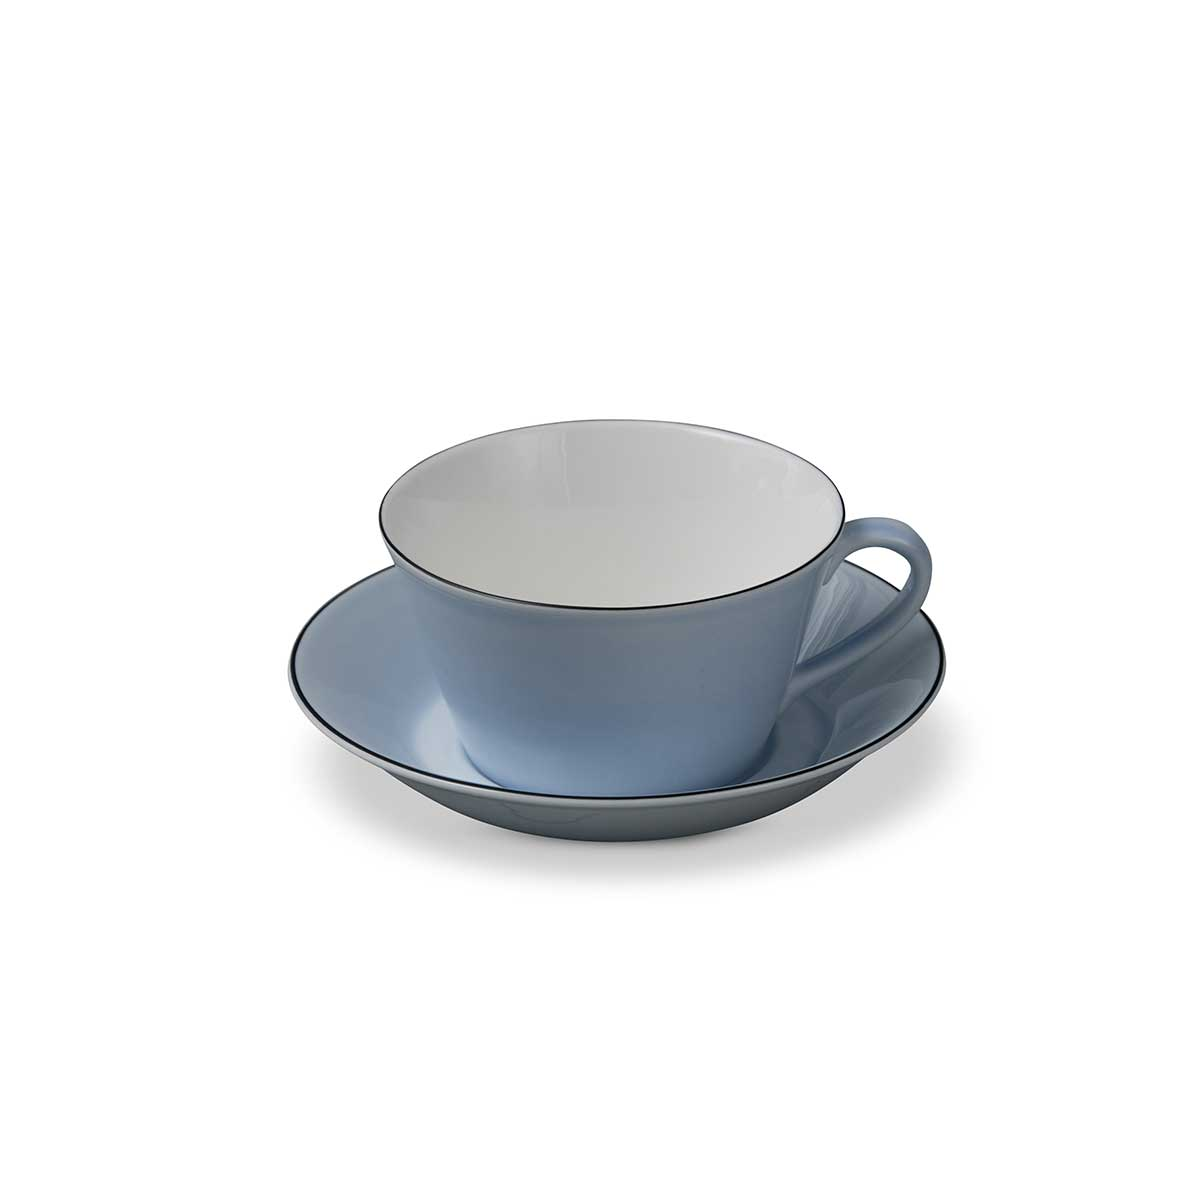 Natur Tea Cup and Saucer